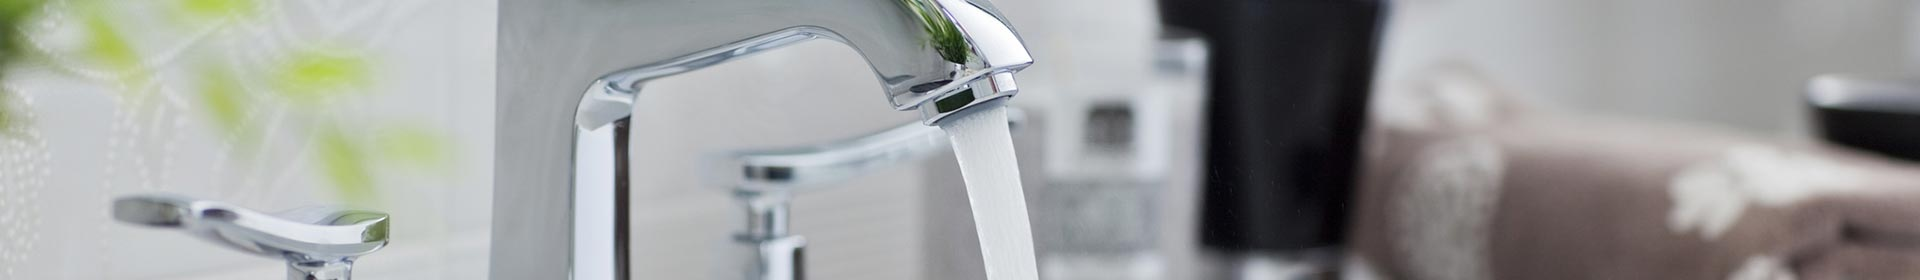 Plumbing Services in Sheffield - A. Frost Sheffield Builders and Joiners